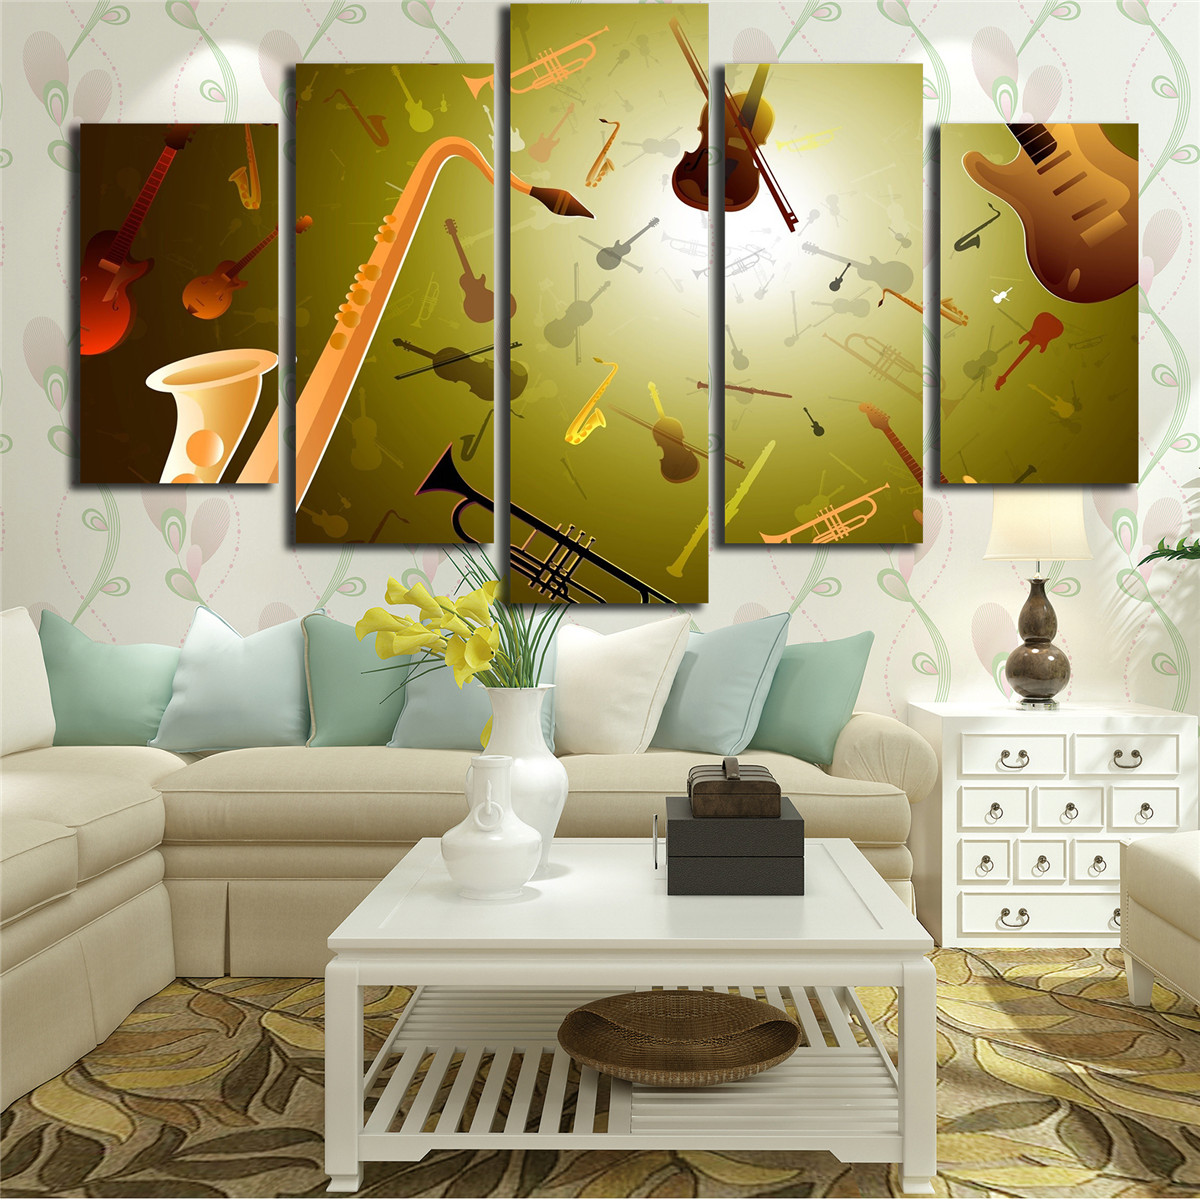 Buy hd printed canvas pictures for living for International home decor stores